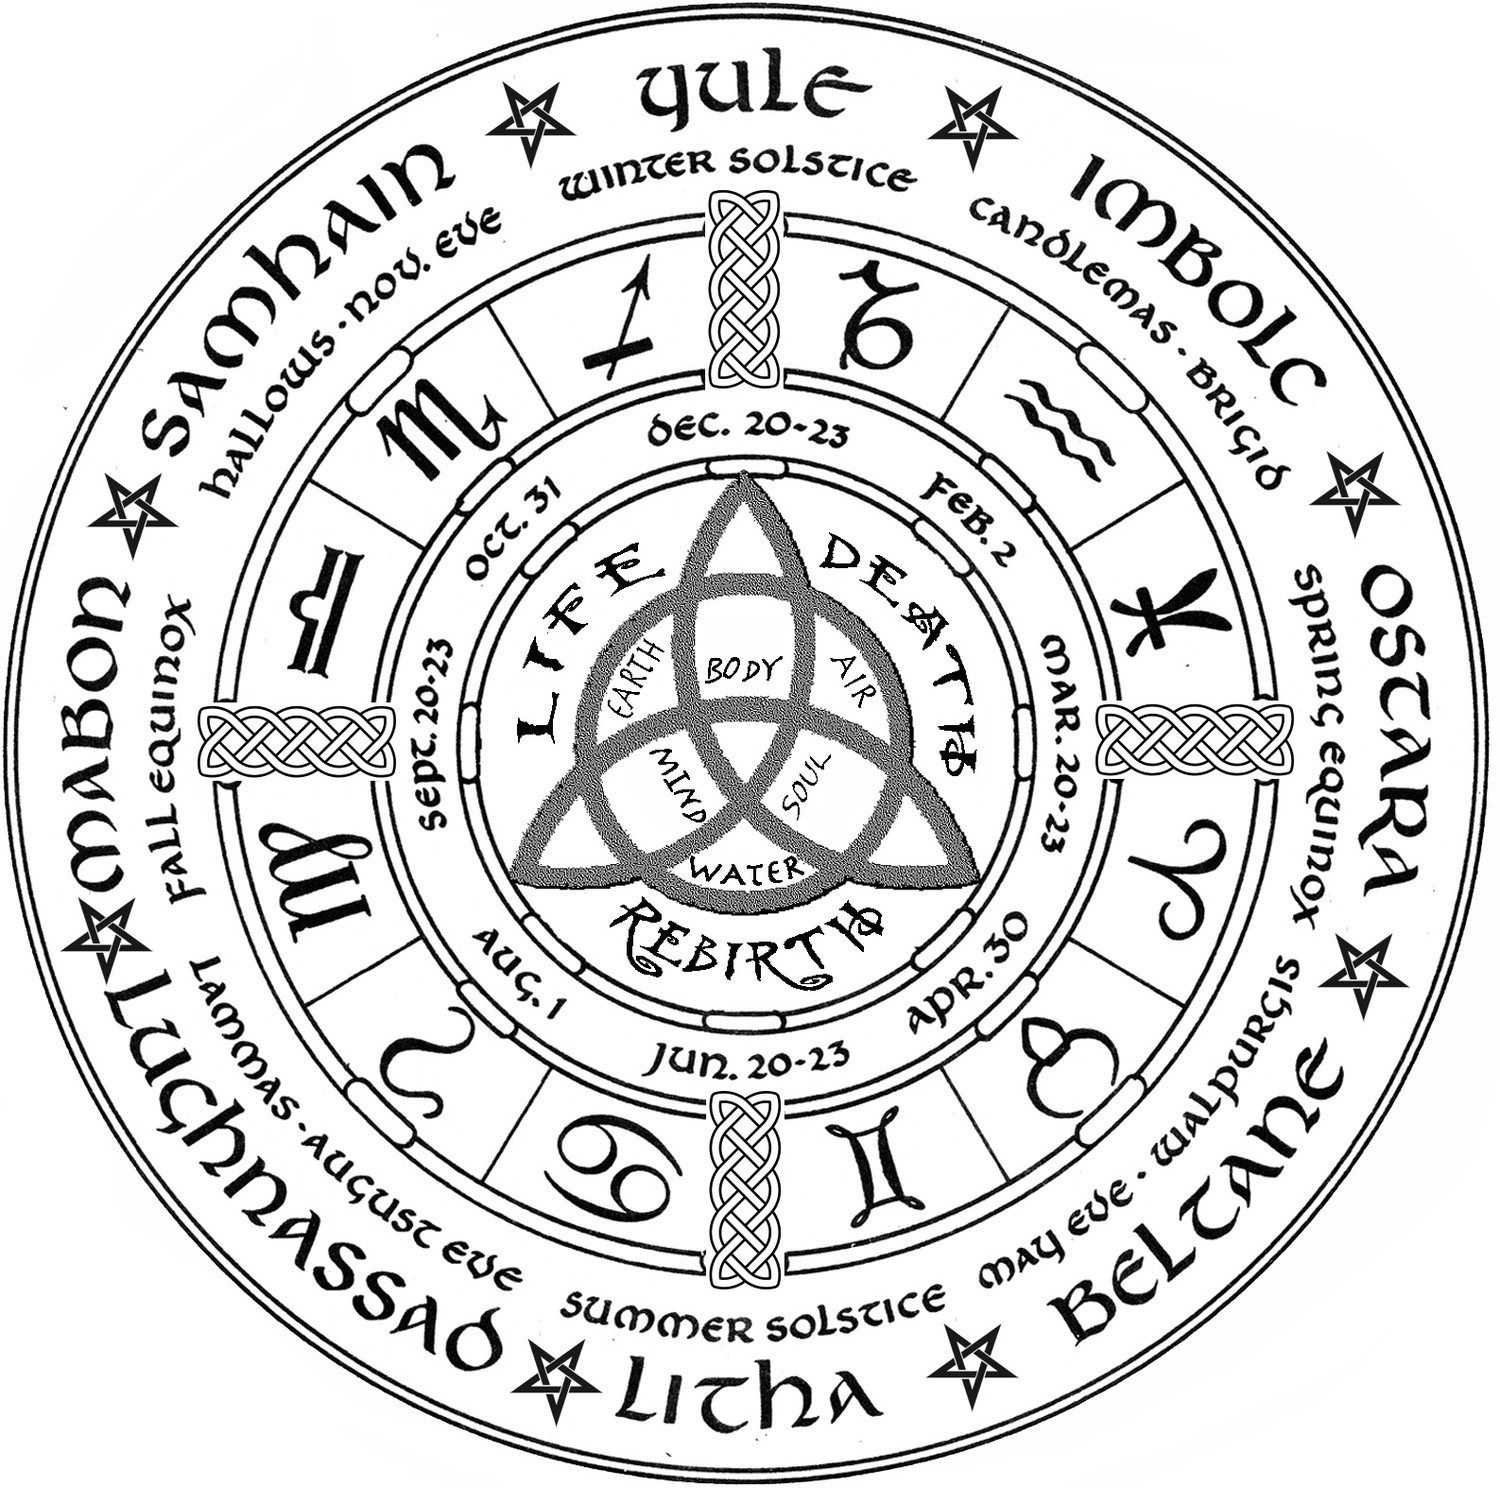 Pin By Arrie Naude On Gadgets Pinterest Symbols Magick And